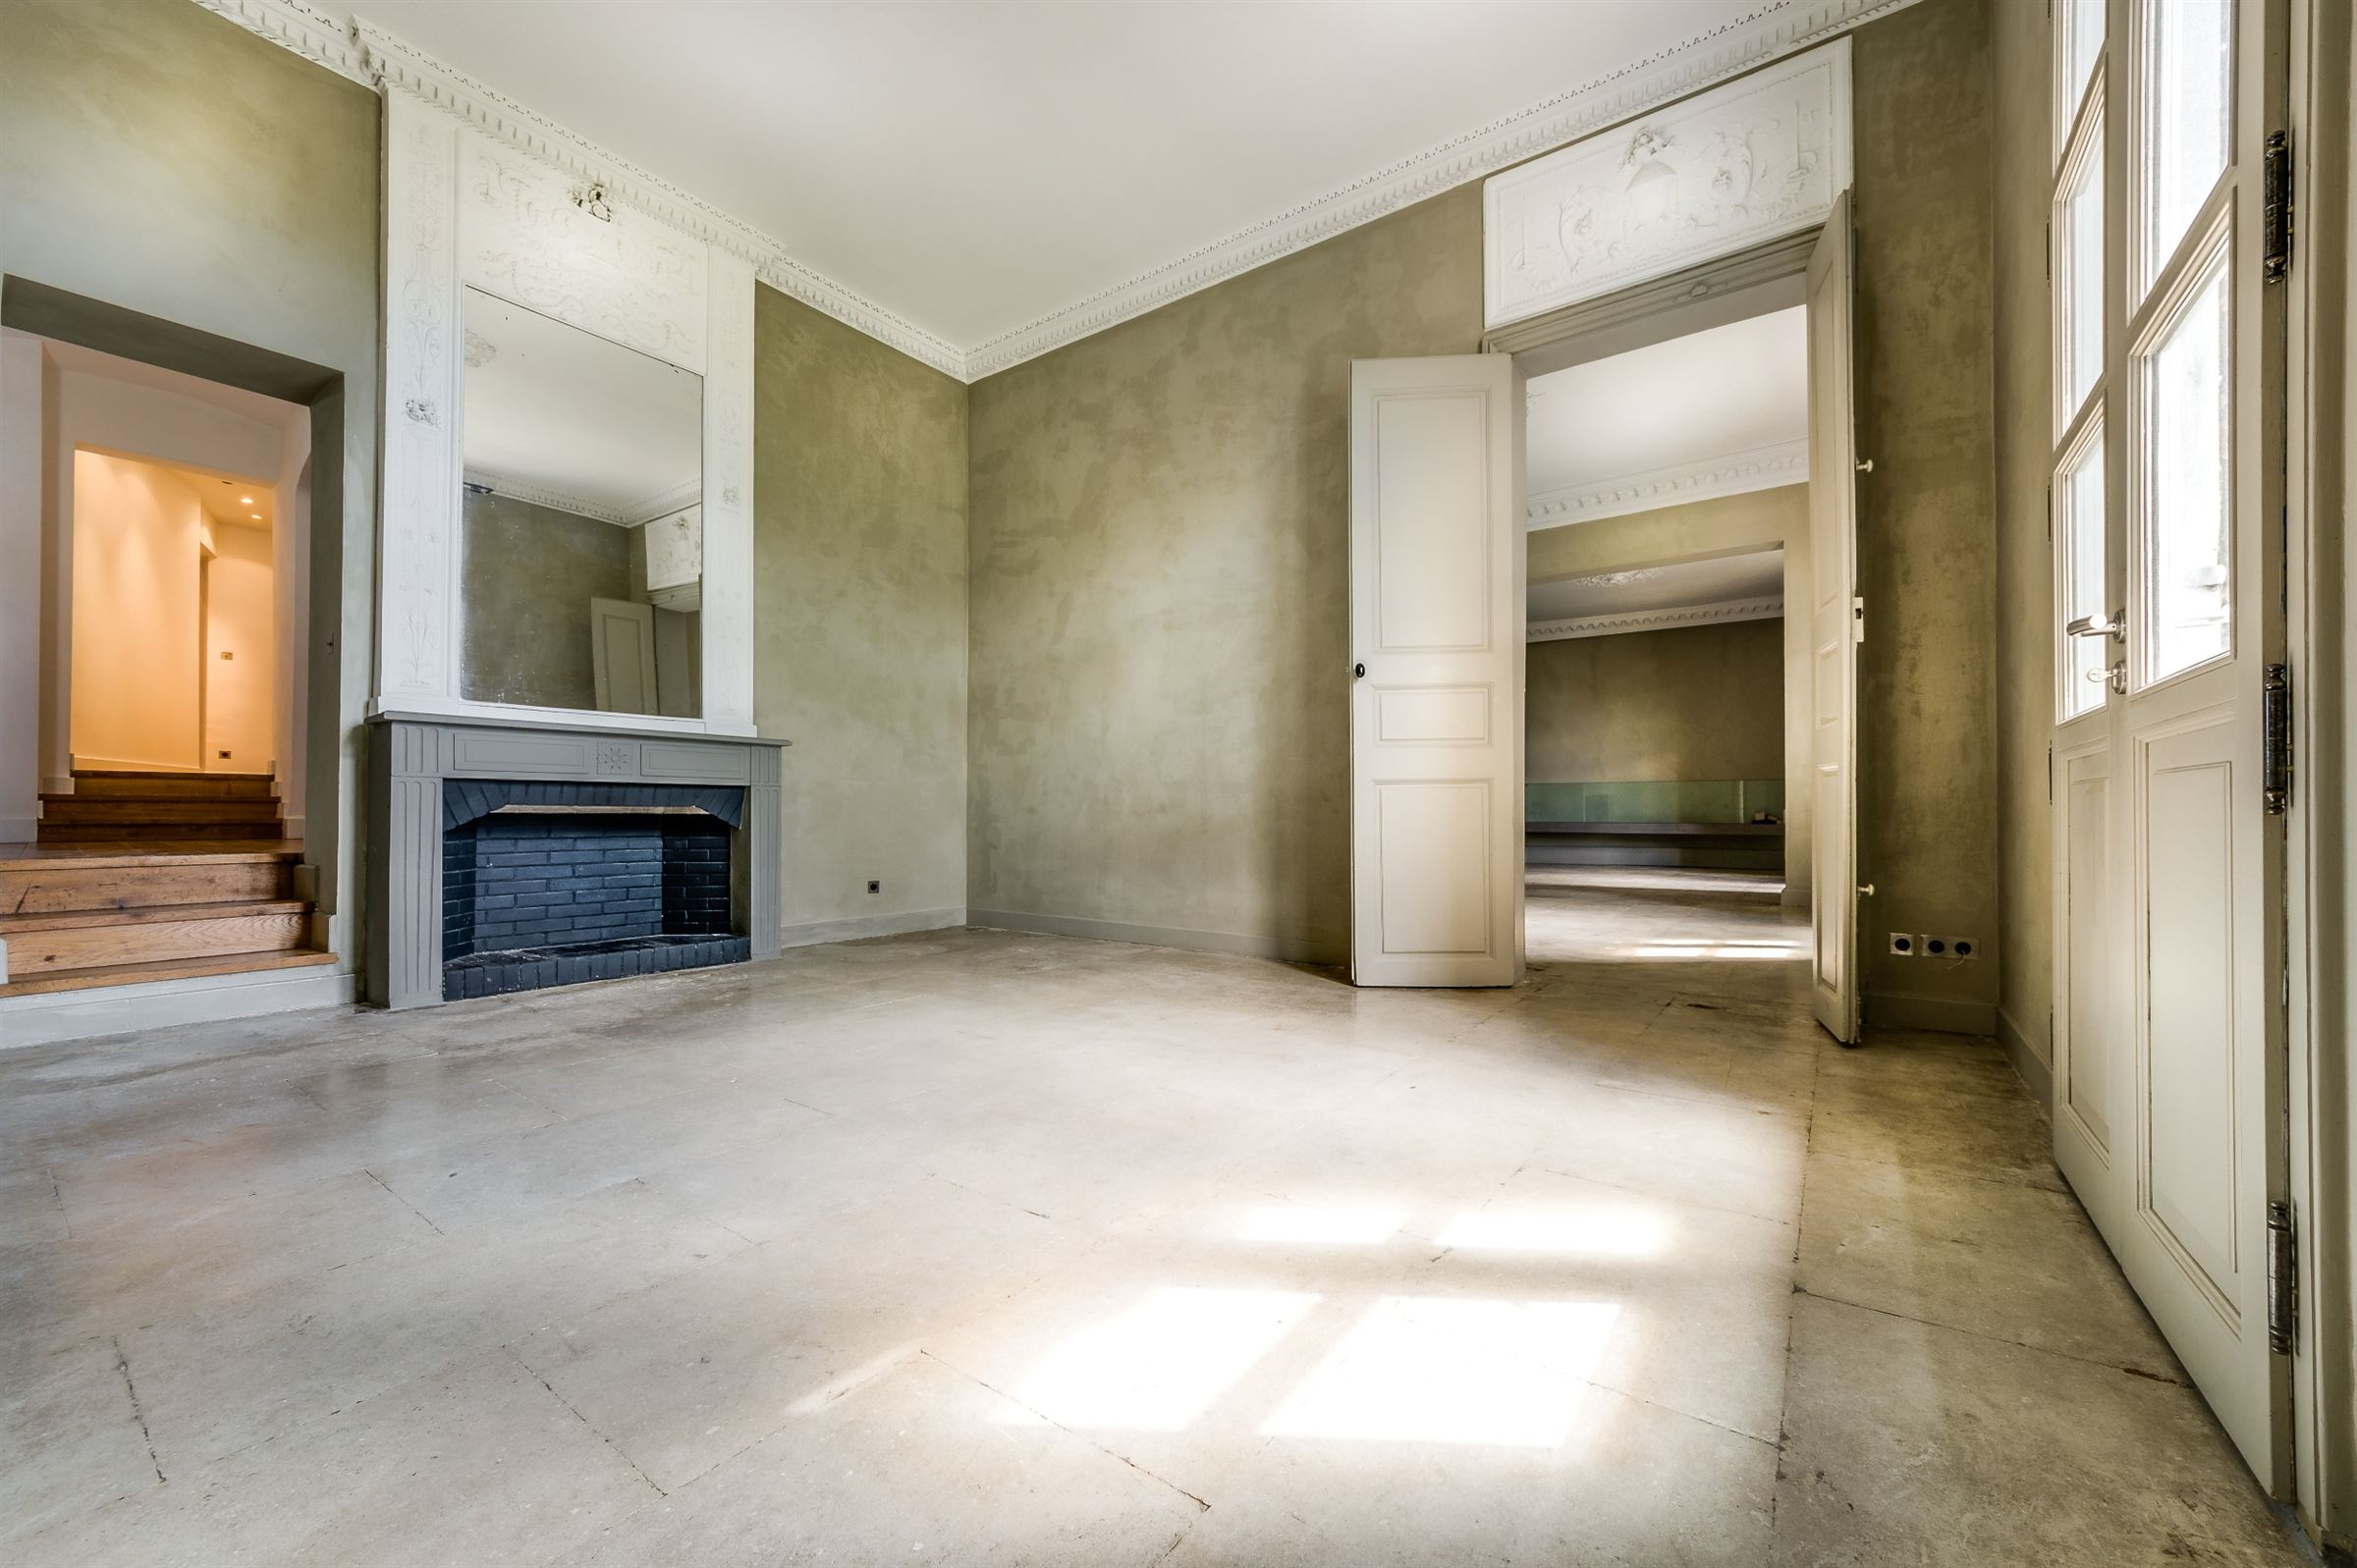 Property For Sale at MONTPELLIER HISTORIC TOWN CENTER LUXURIOUS MANSION HOUSE WITH TERRACE !